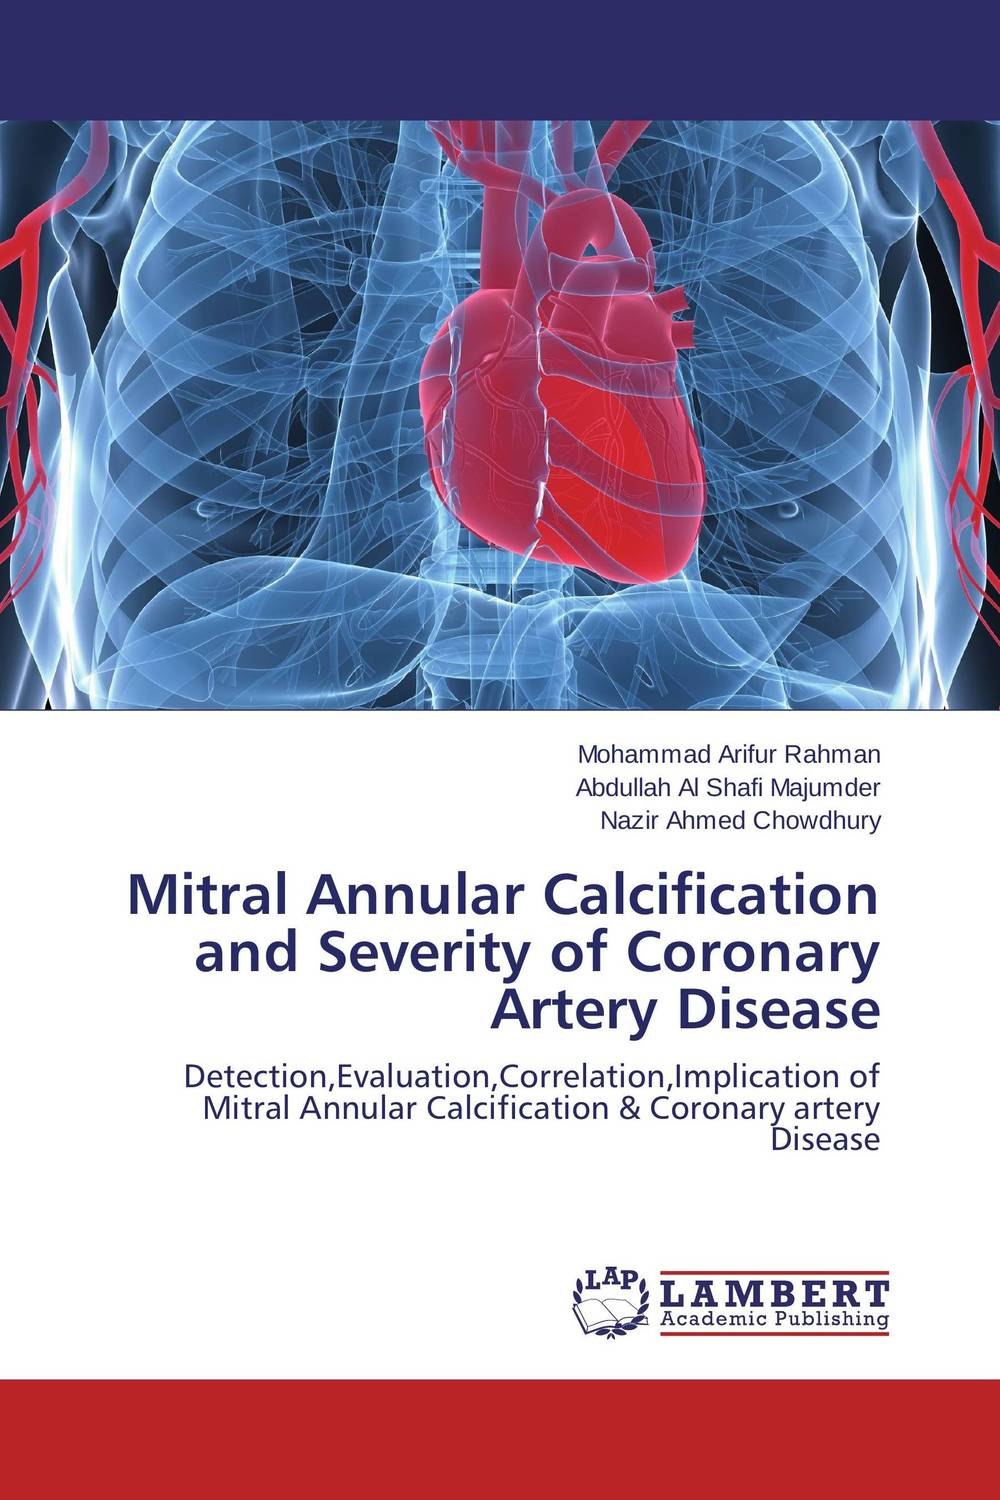 Mitral Annular Calcification and Severity of Coronary Artery Disease  cytokine genes and coronary heart disease in an indian population